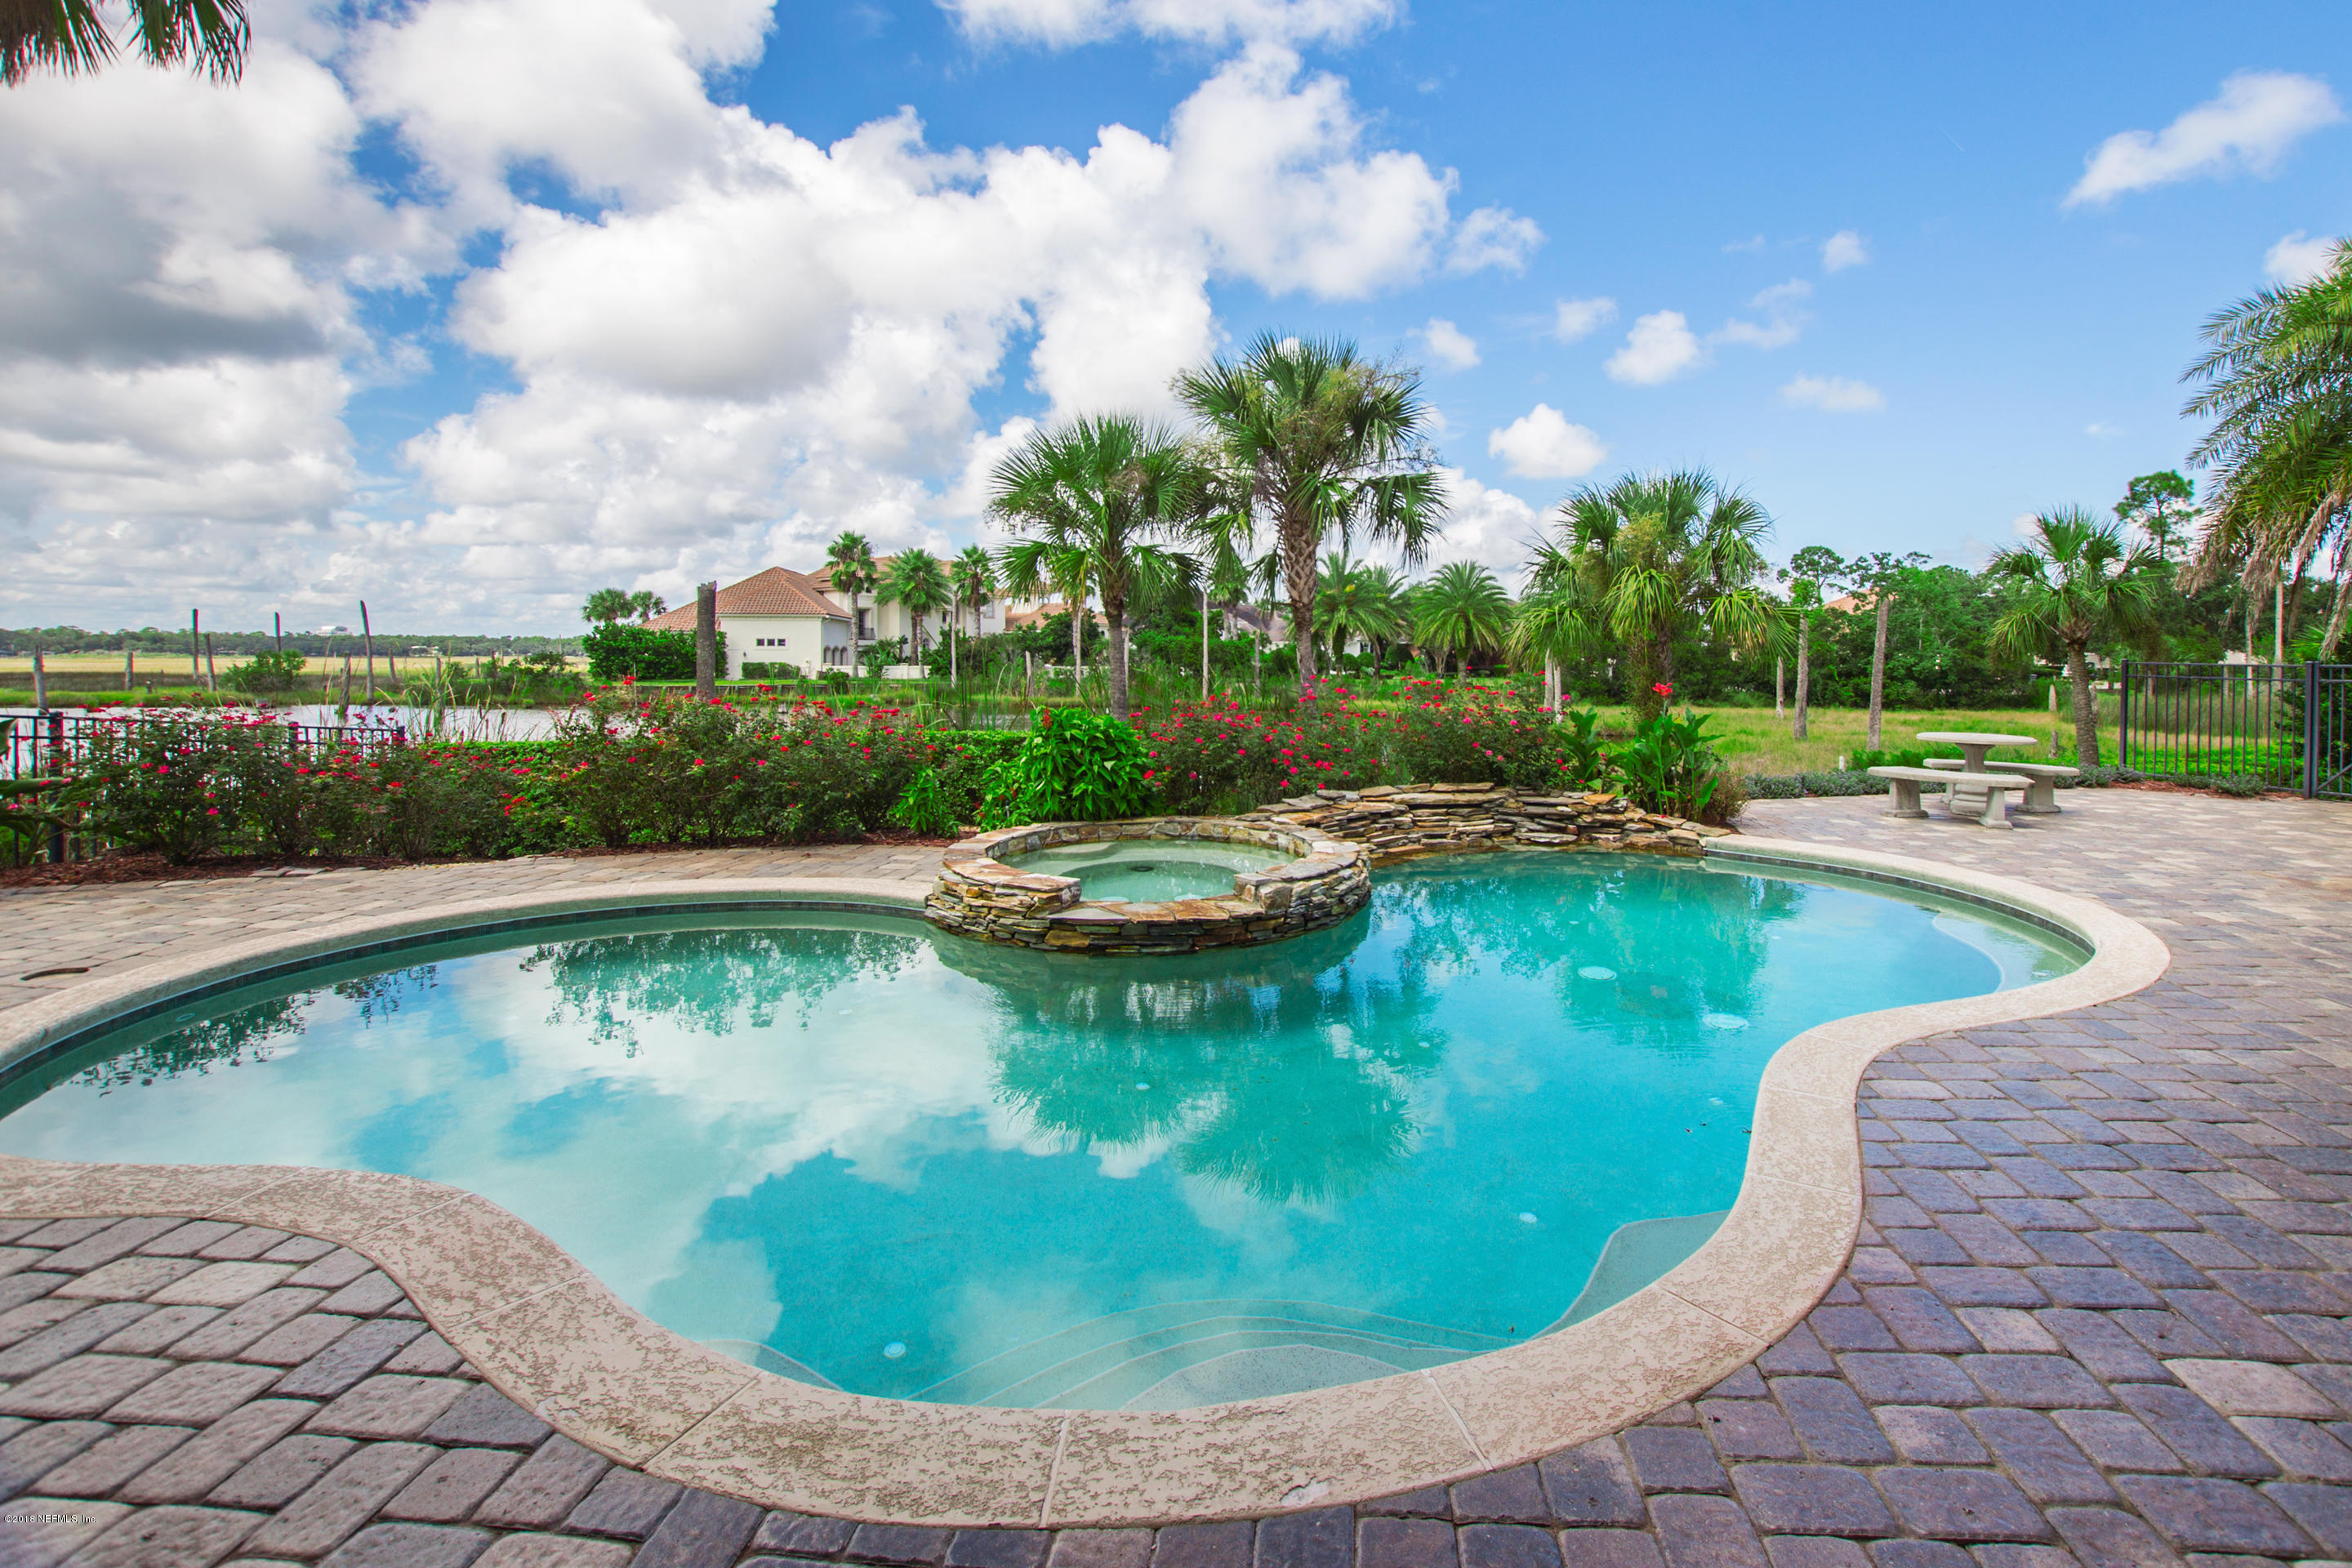 608 IBIS COVE, PONTE VEDRA BEACH, FLORIDA 32082, 5 Bedrooms Bedrooms, ,6 BathroomsBathrooms,Residential - single family,For sale,IBIS COVE,956469